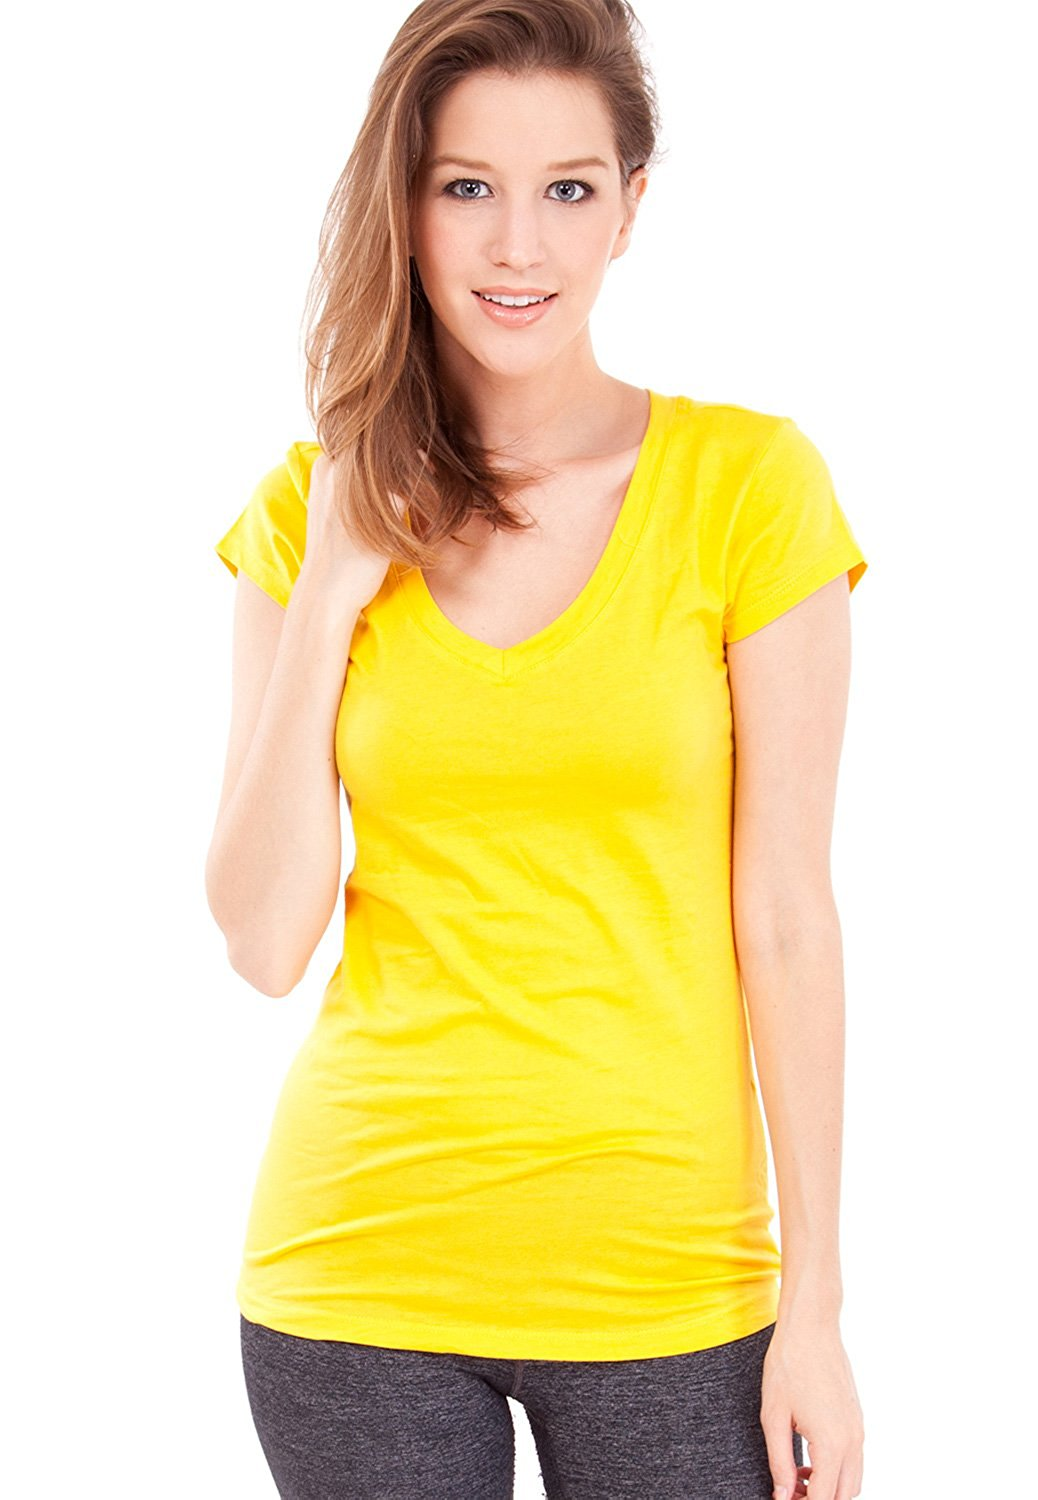 Clothes Effect Woman Short Sleeve V-Neck T-Shirt, Multiple Colors S-3X